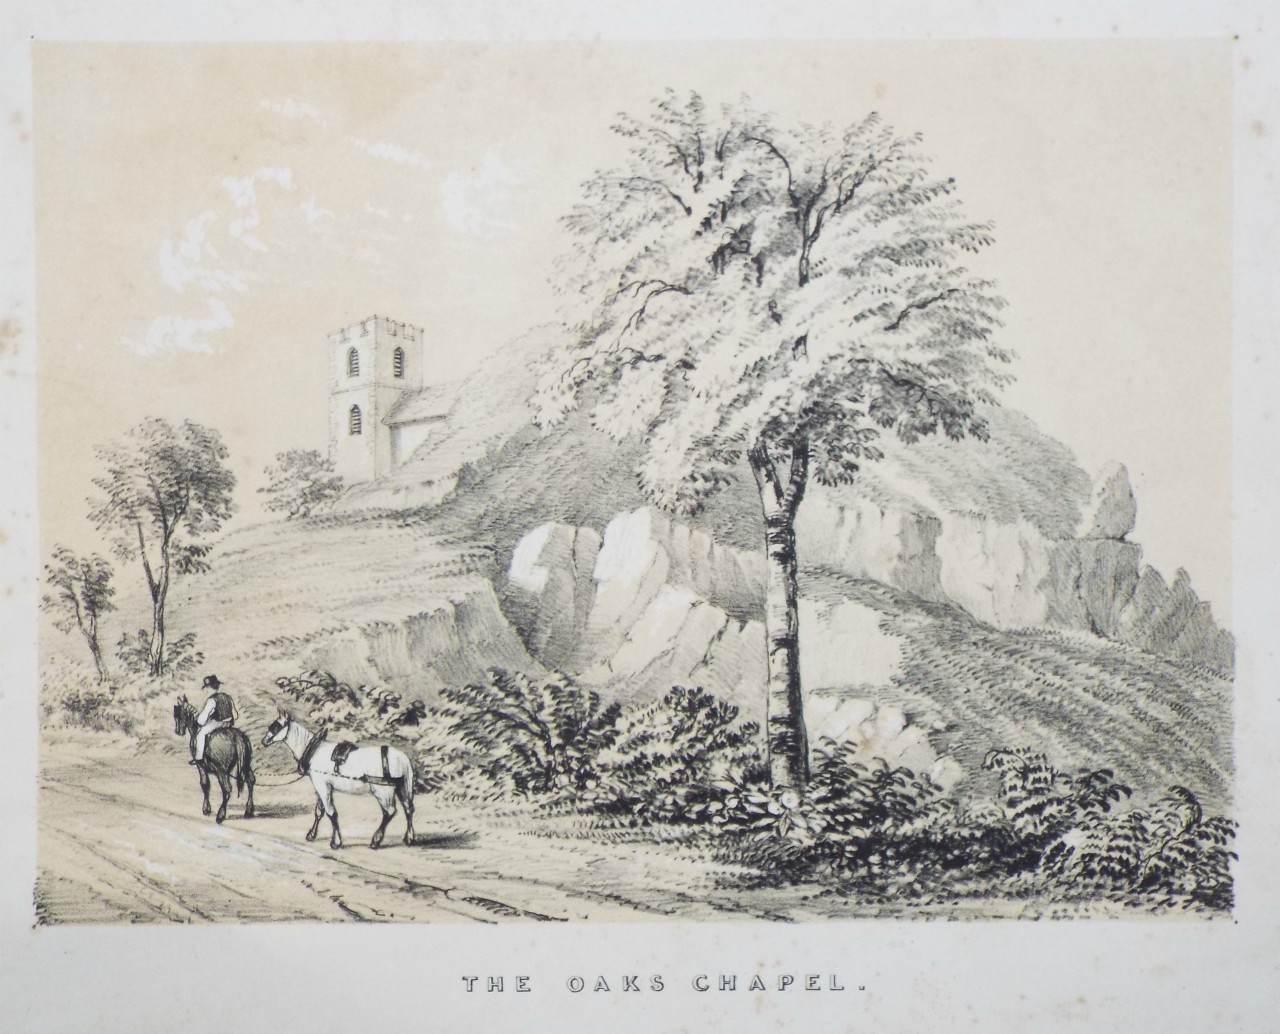 Lithograph - The Oaks Chapel. - Palmer